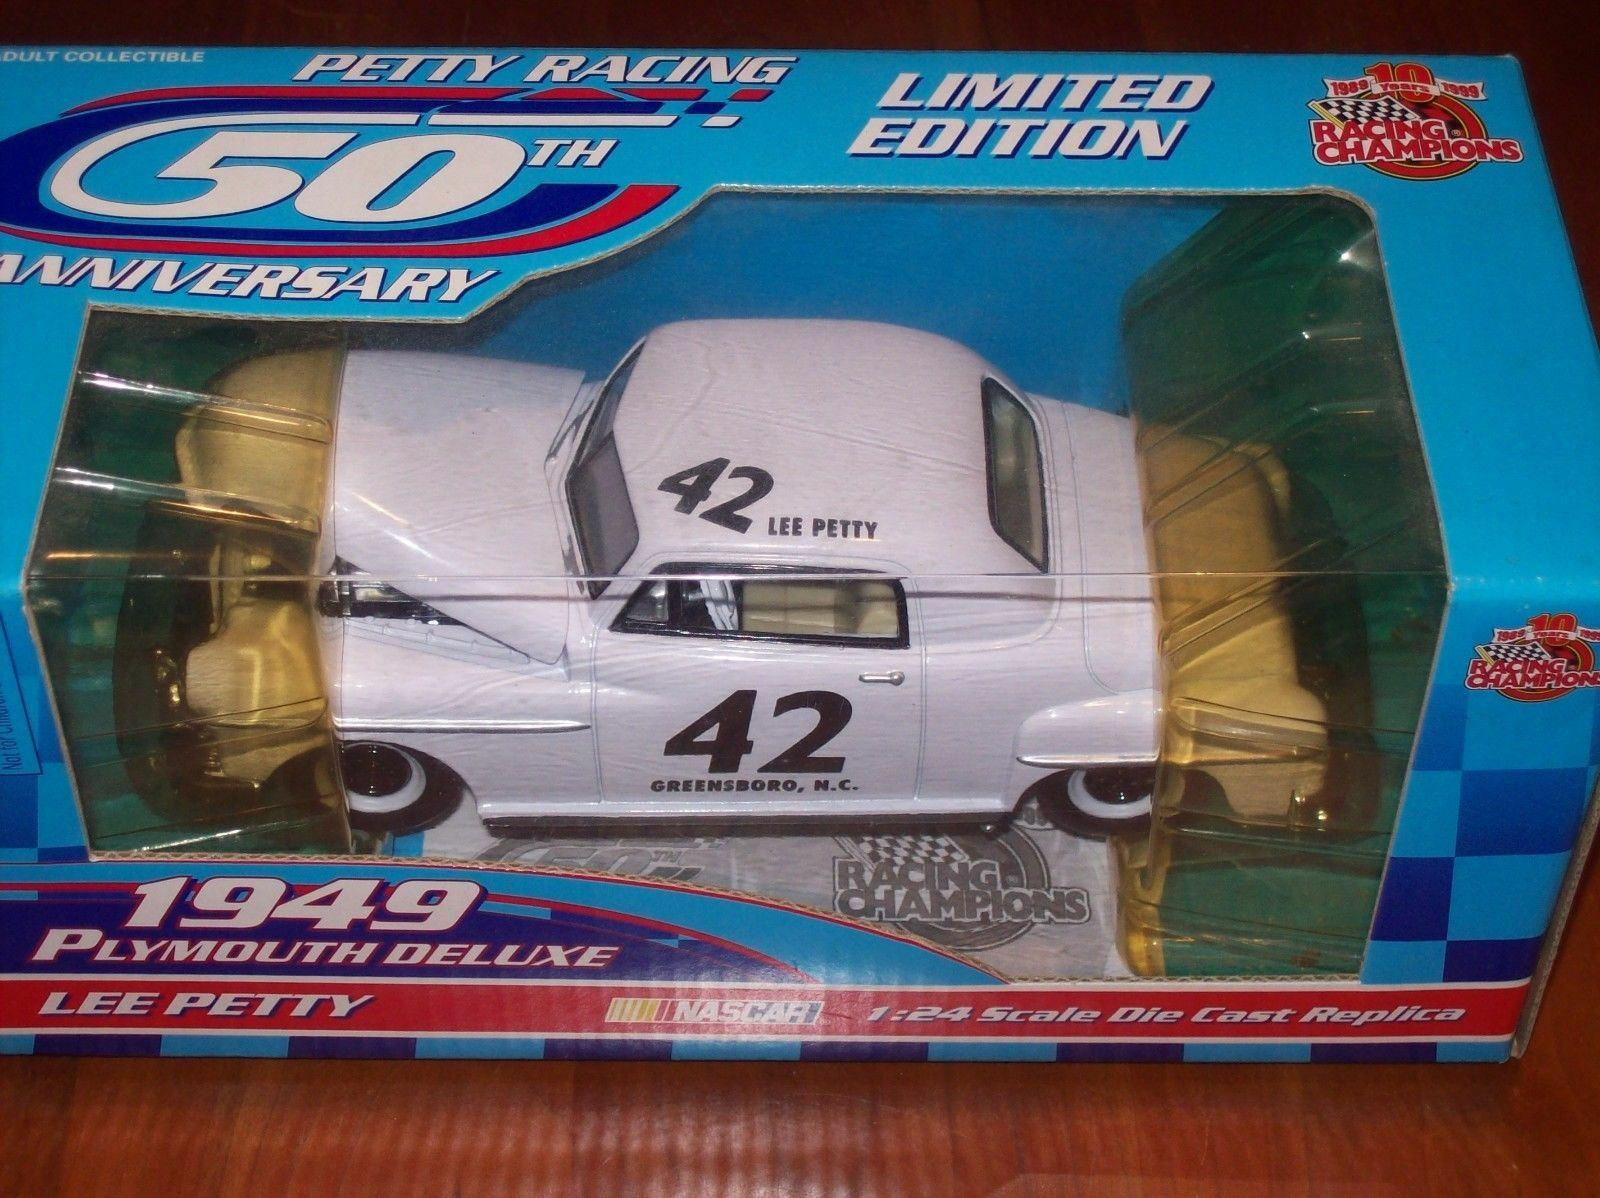 Racing Champions Lee Petty 1949 Plymouth Deluxe 42 Car 50th Anniversary 1 24